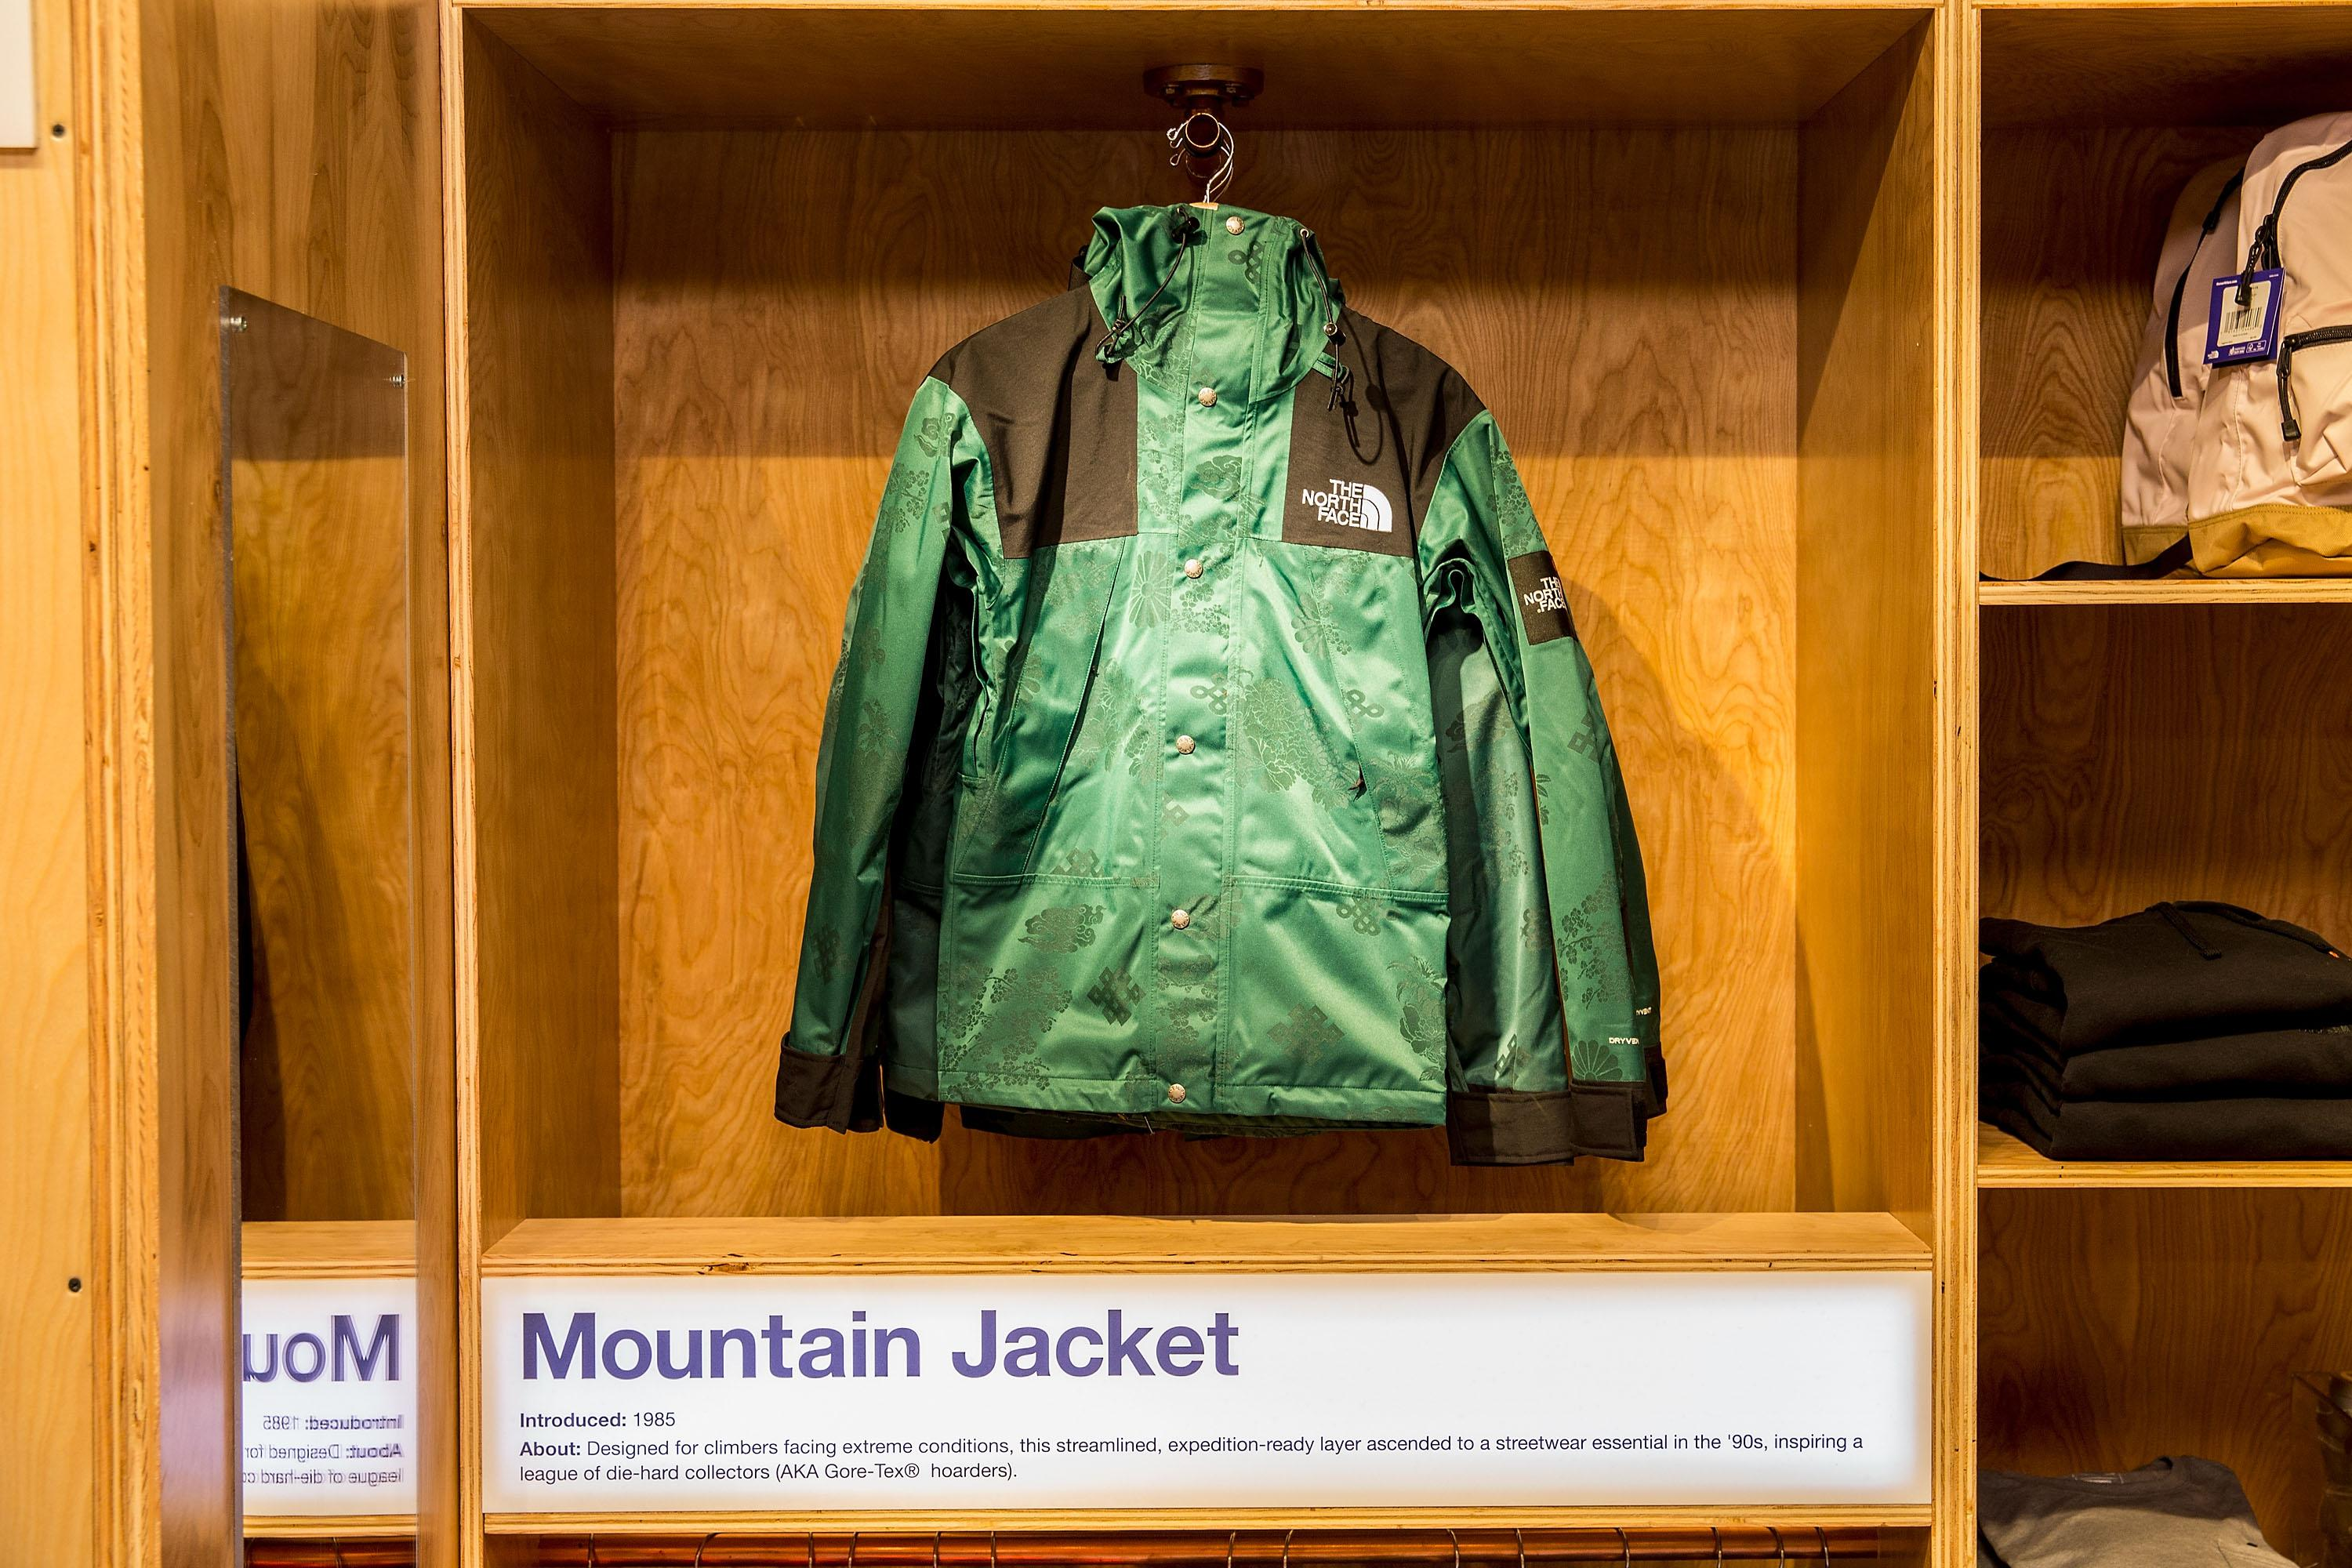 When you think Seattle fashion, you likely think North Face jackets and Nordstrom. So it's only right that they two PNW giants (one from here, one worn here like a uniform) came together for a special, limited time only pop-up. The Exclusive capsule collection features the North Face brand's most iconic pieces, like the Denali jacket, Nuptse puffer and the Mountain Jacket. The pop-in opens January 12, 2017 and will be available in store at Bellevue Square and downtown Seattle, and online through February 11, 2017 at Nordstrom.com/pop. (Image: Nordstrom)